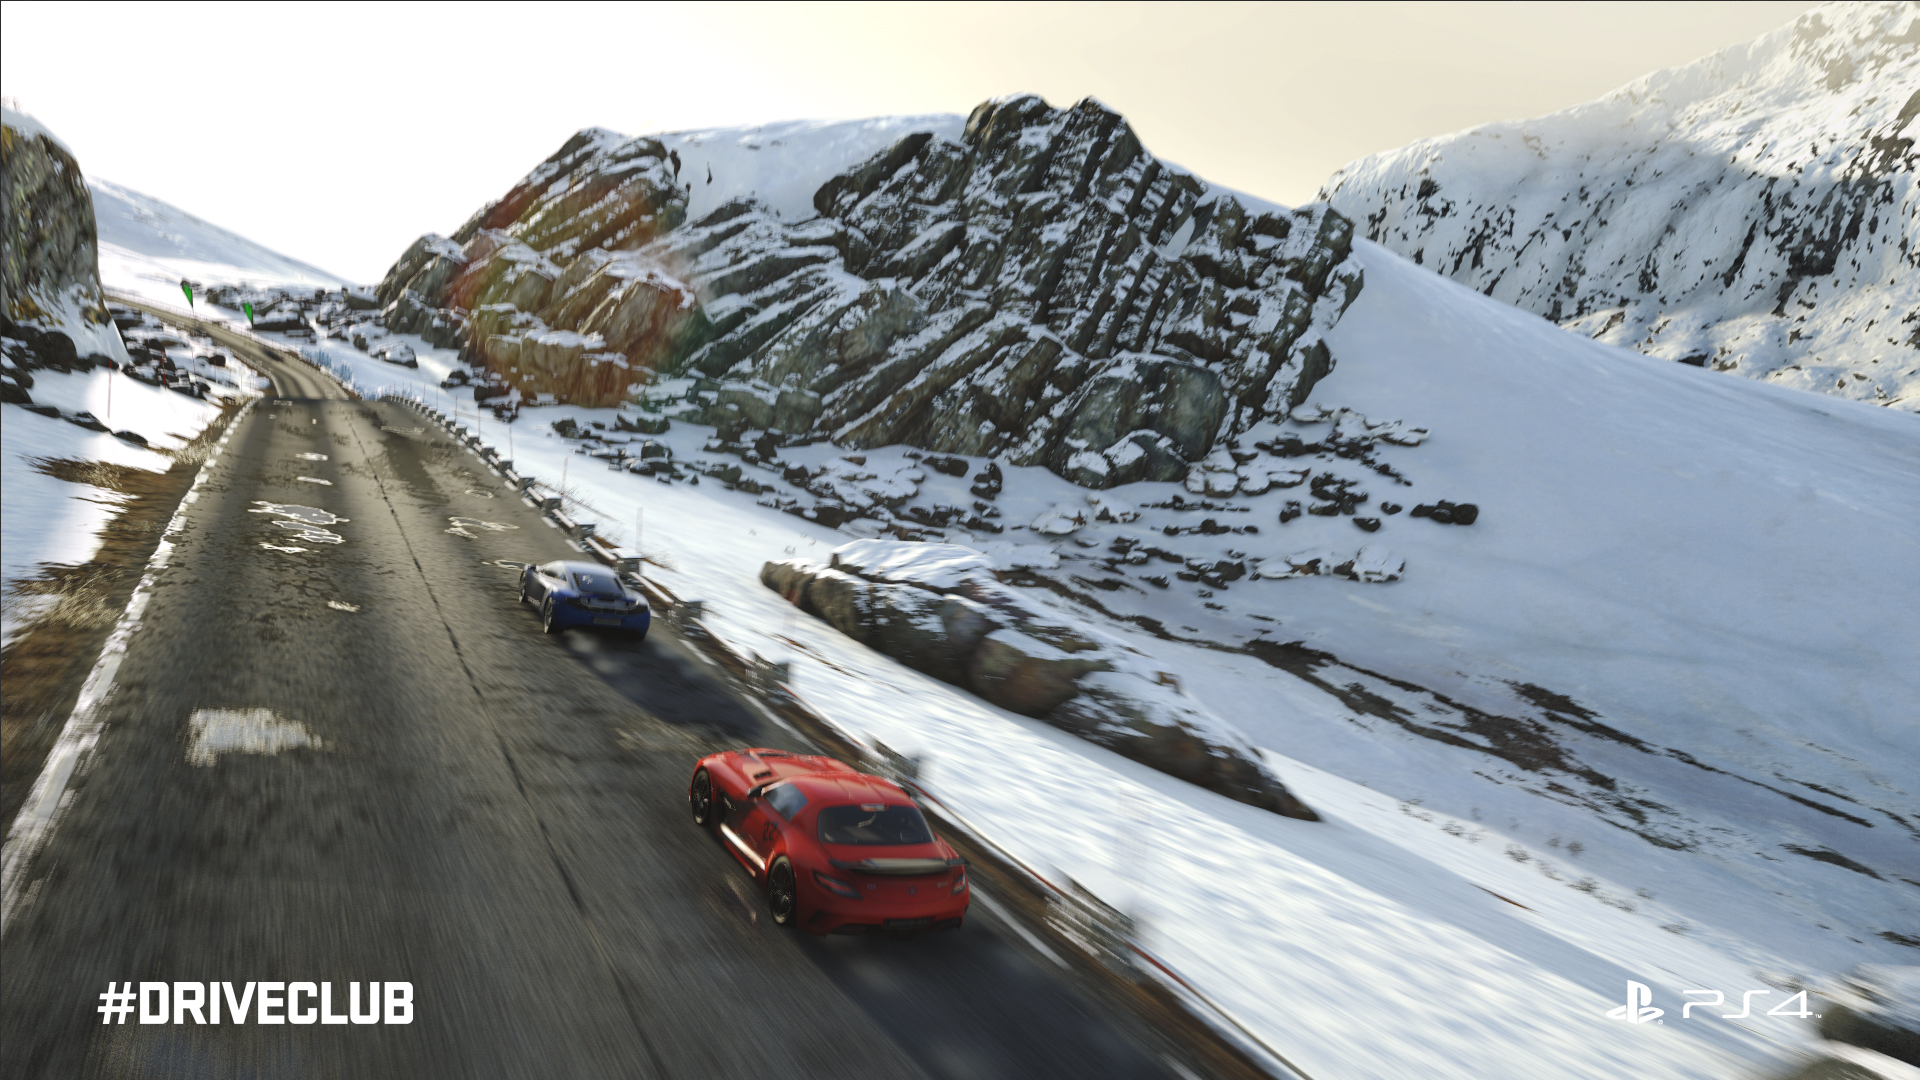 Driveclub 010615